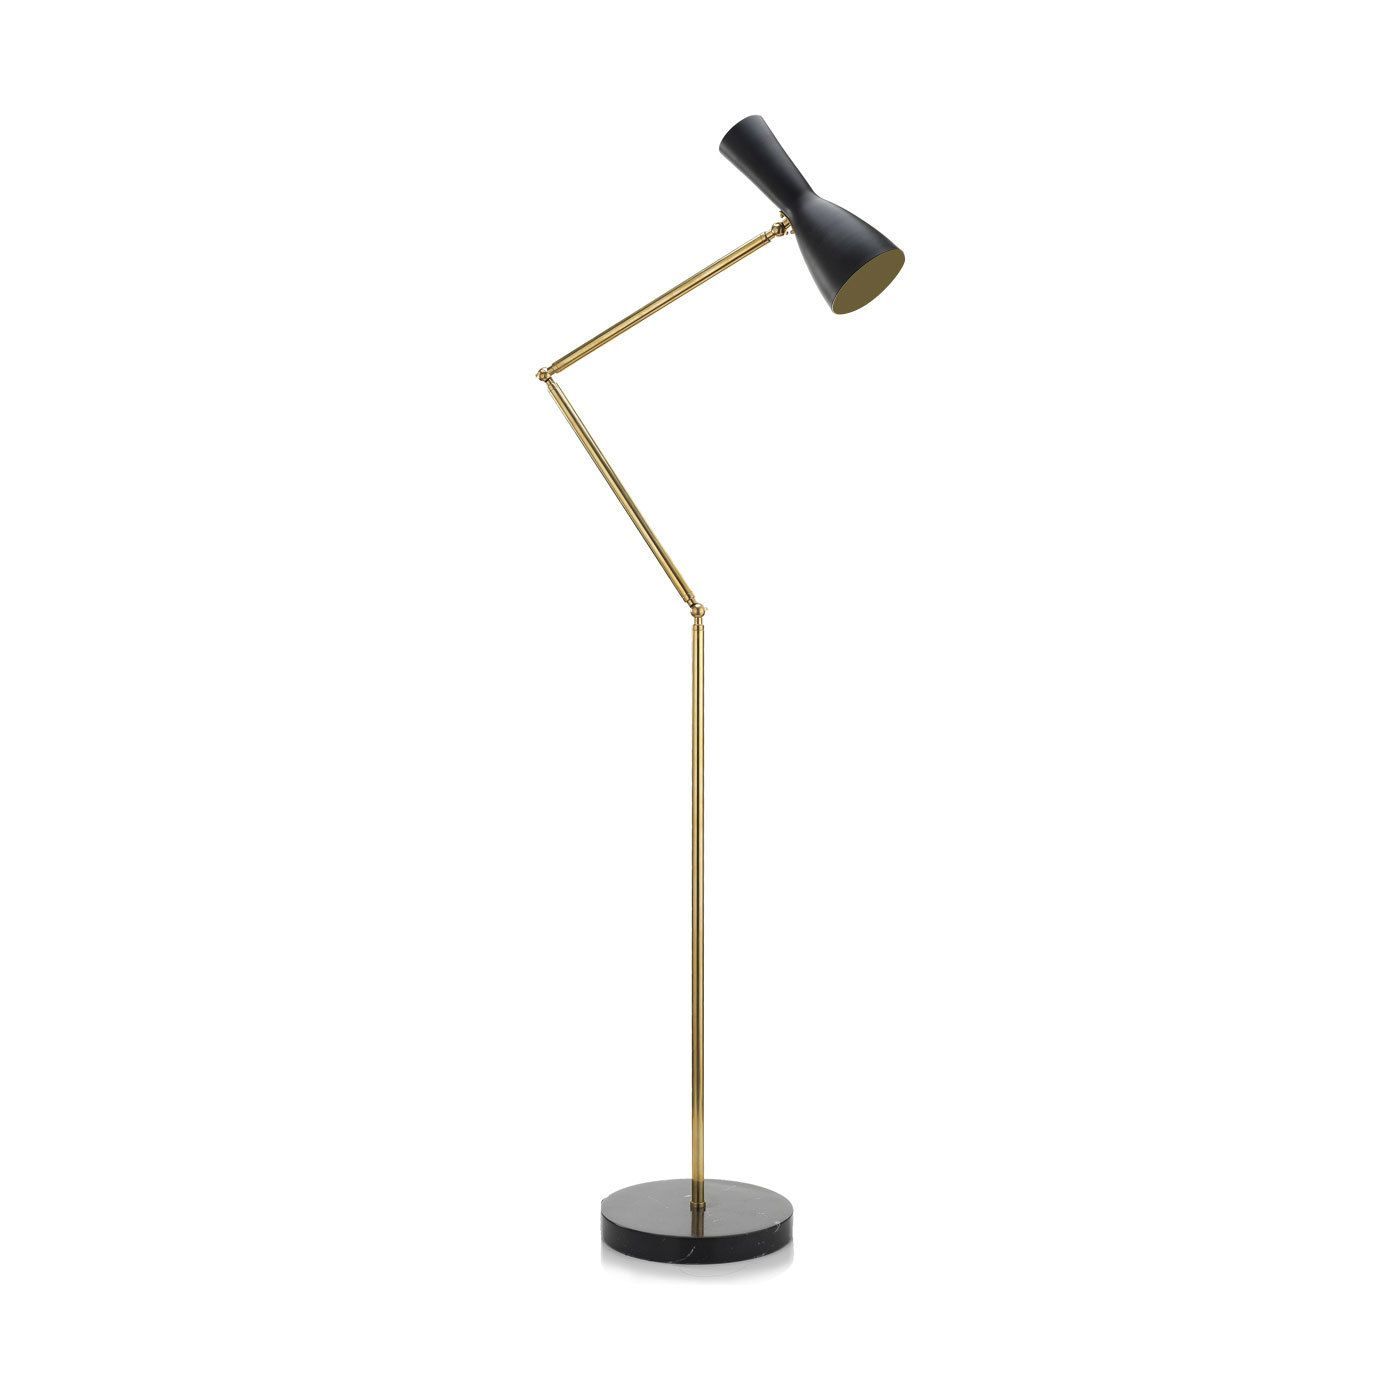 timeless lighting. Wormhole N1 Floor Lamp Shop Timeless Lighting Handcrafted In Italy Chandeliers I